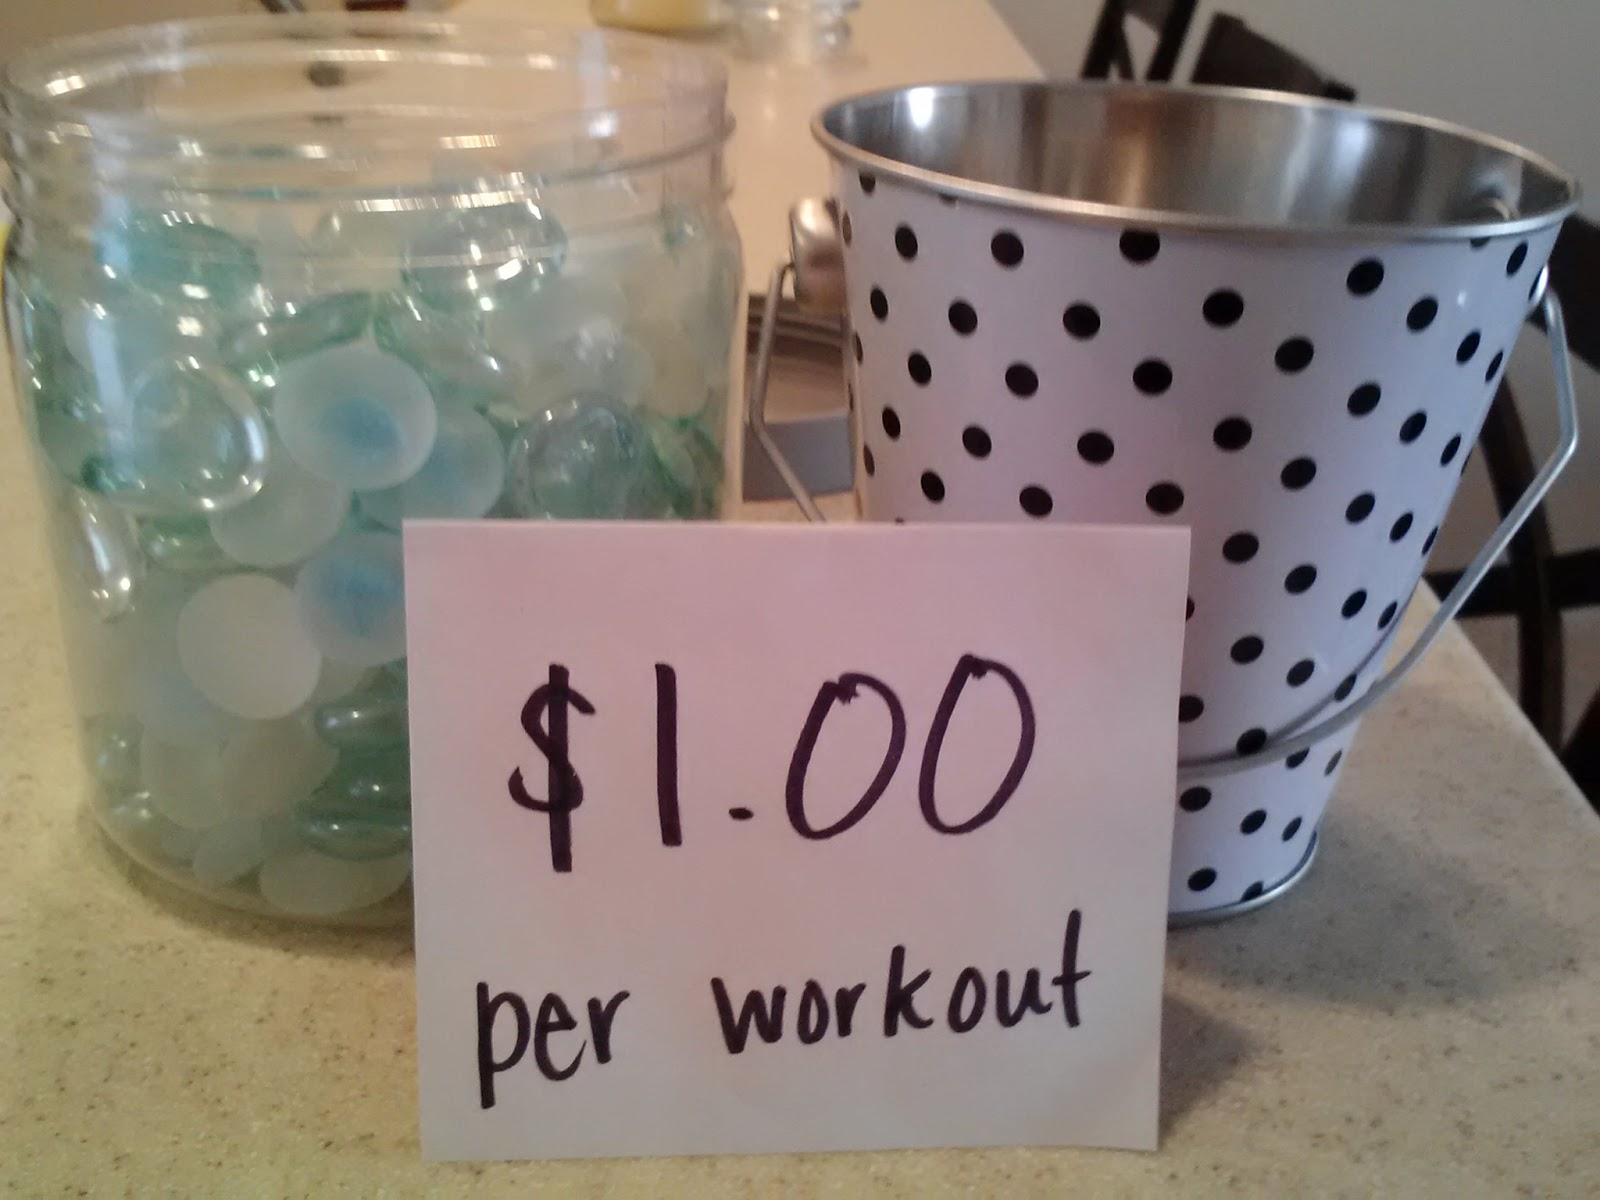 Weight loss programs that work yahoo answers image 23